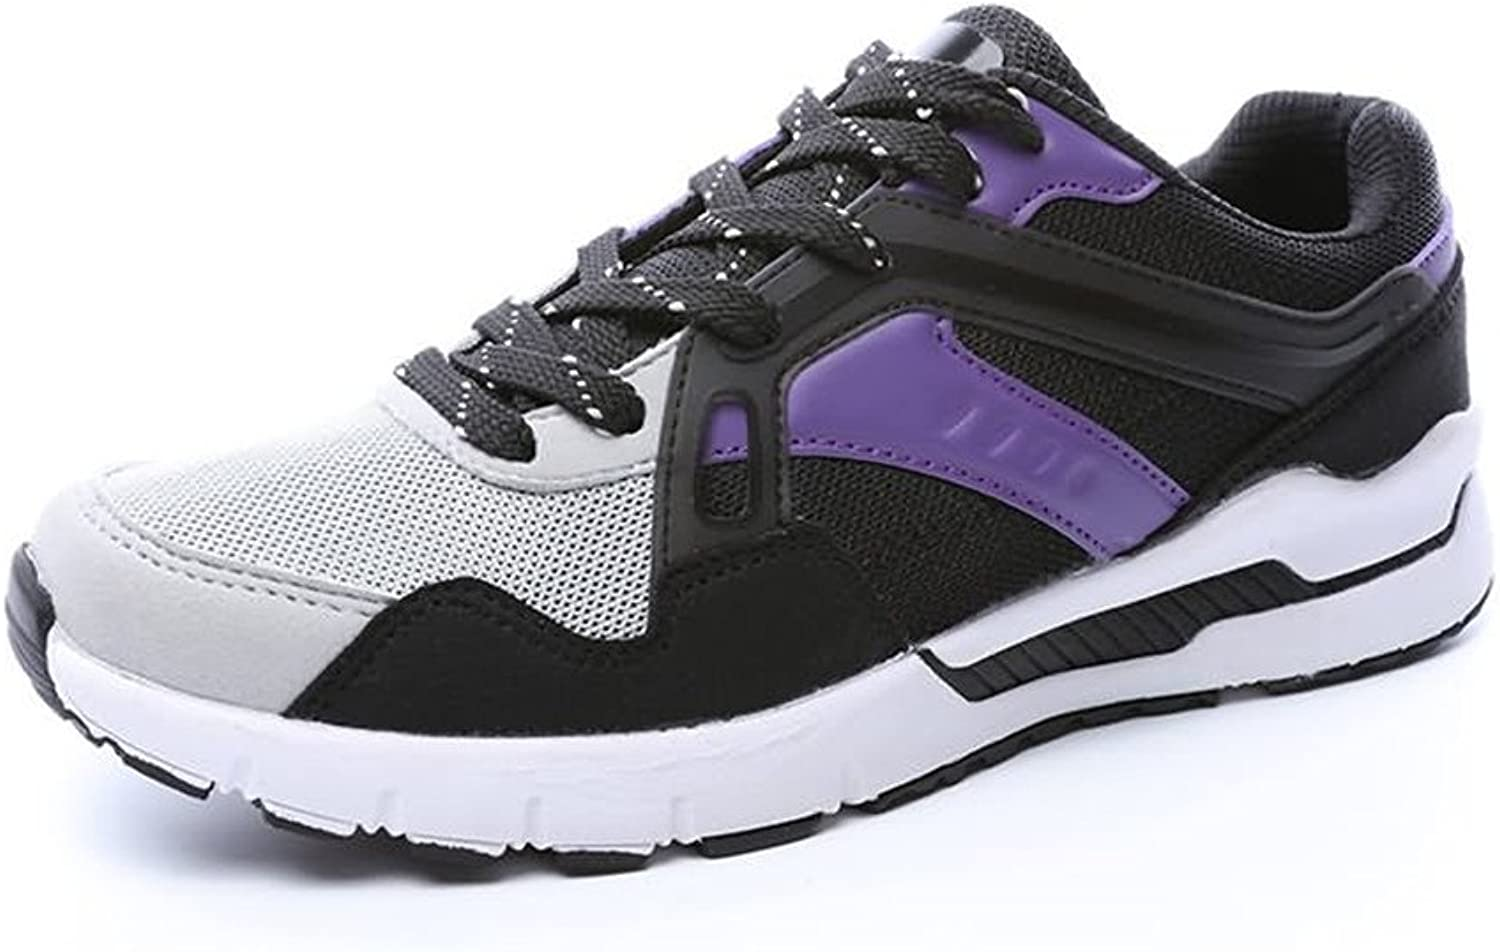 2018 New Women and Men's Breathable Flat Heel Lace up Leisure Athletic shoes (color   Black Purple, Size   6.5 MUS)